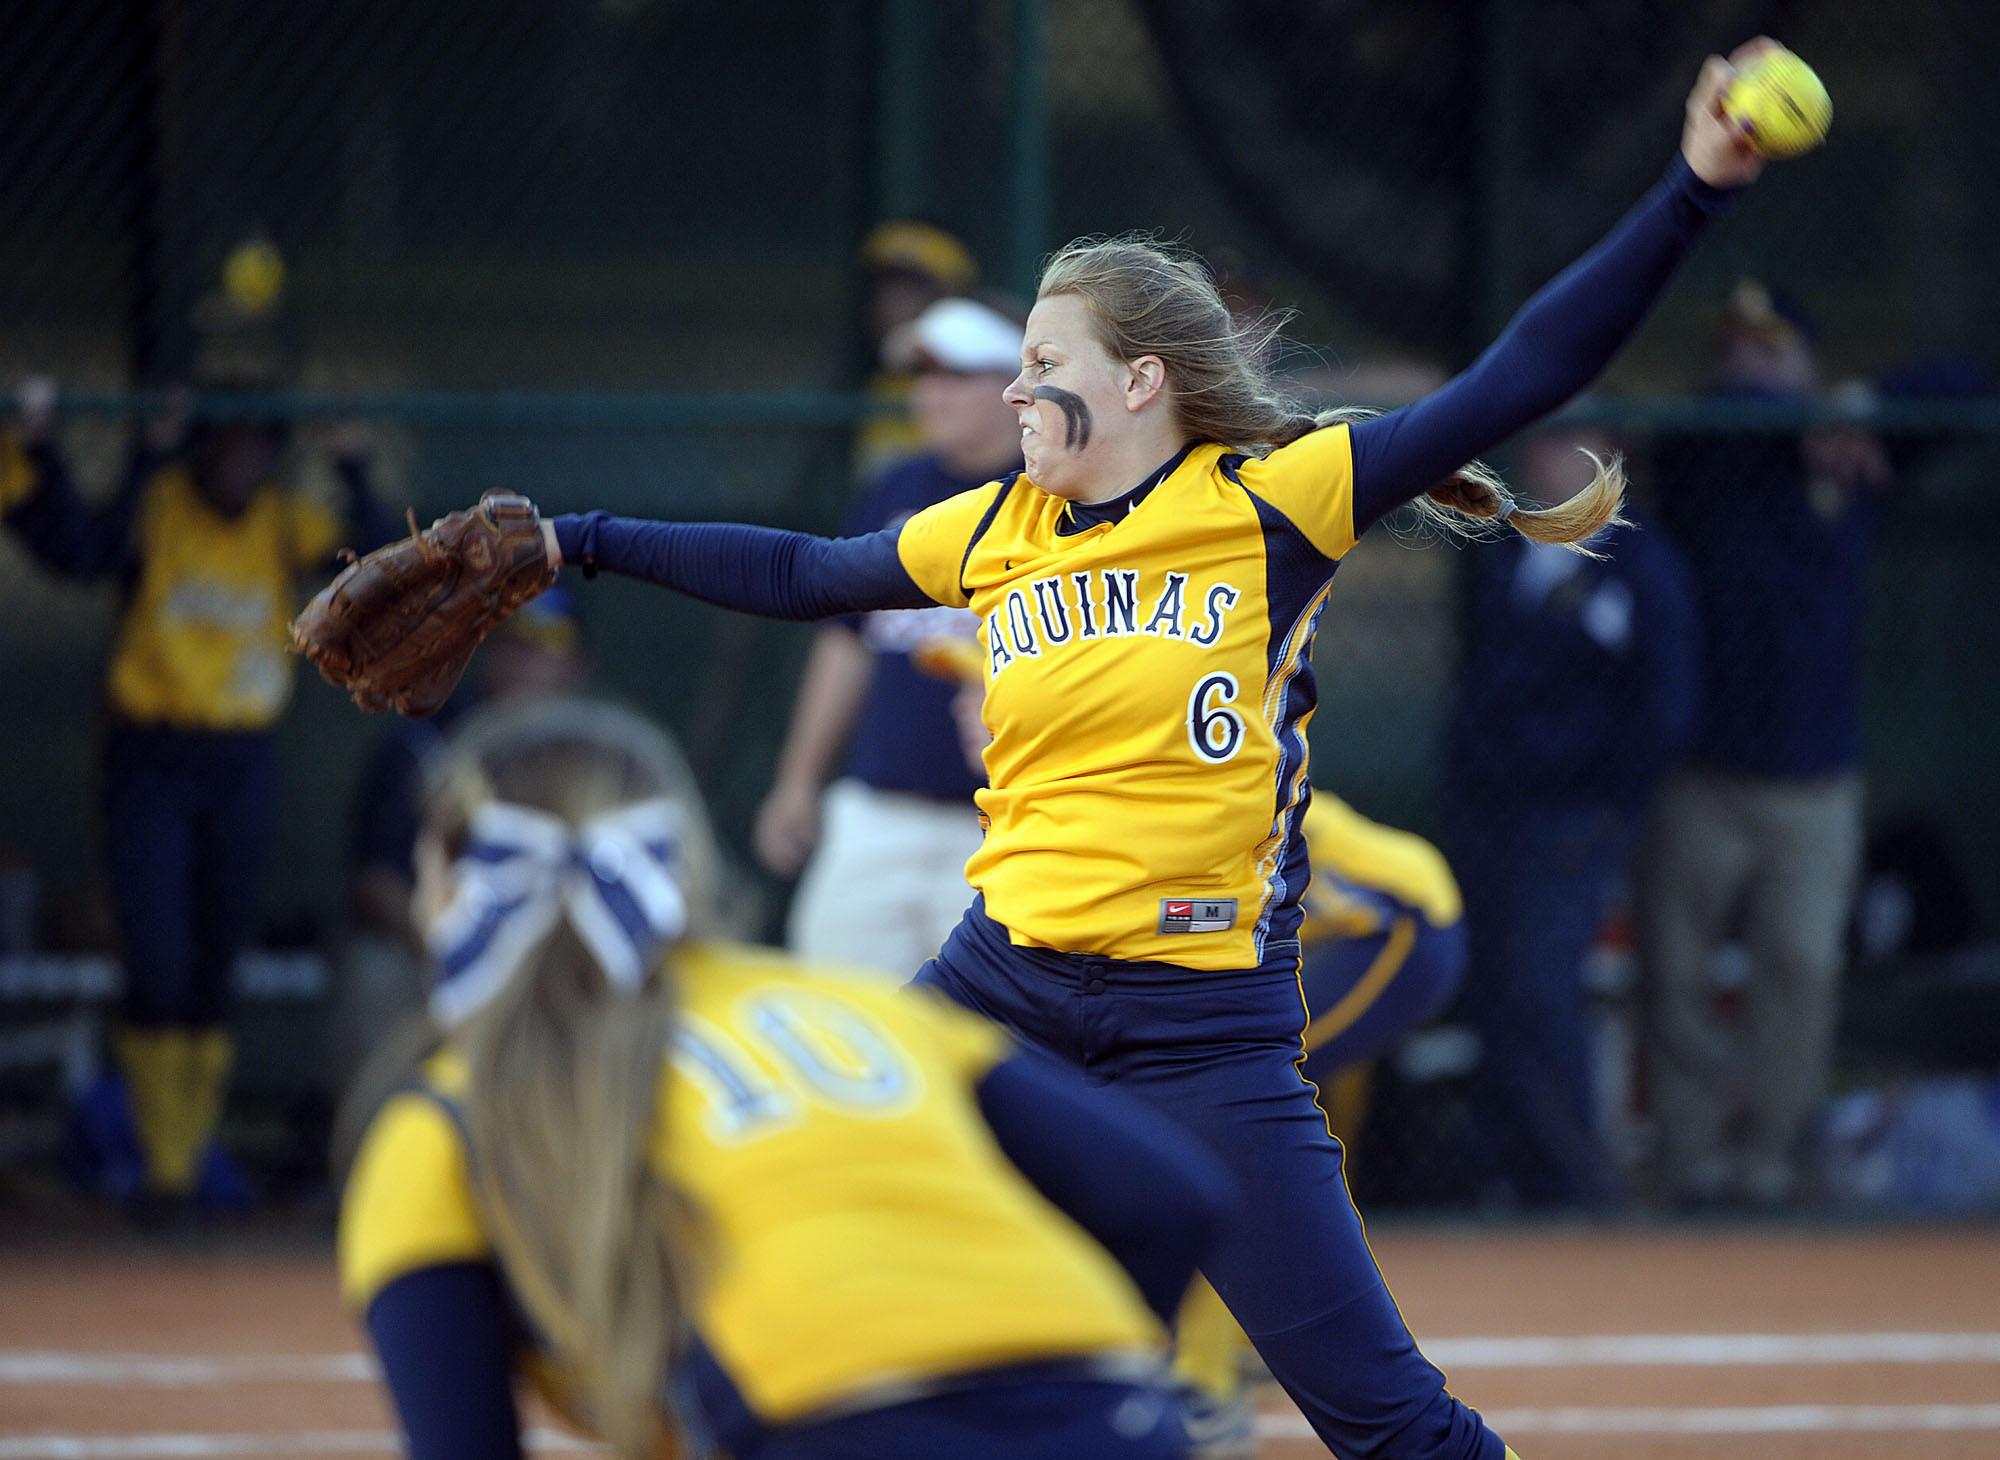 St. Thomas Aquinas pitcher Meghan King delivers a pitch.